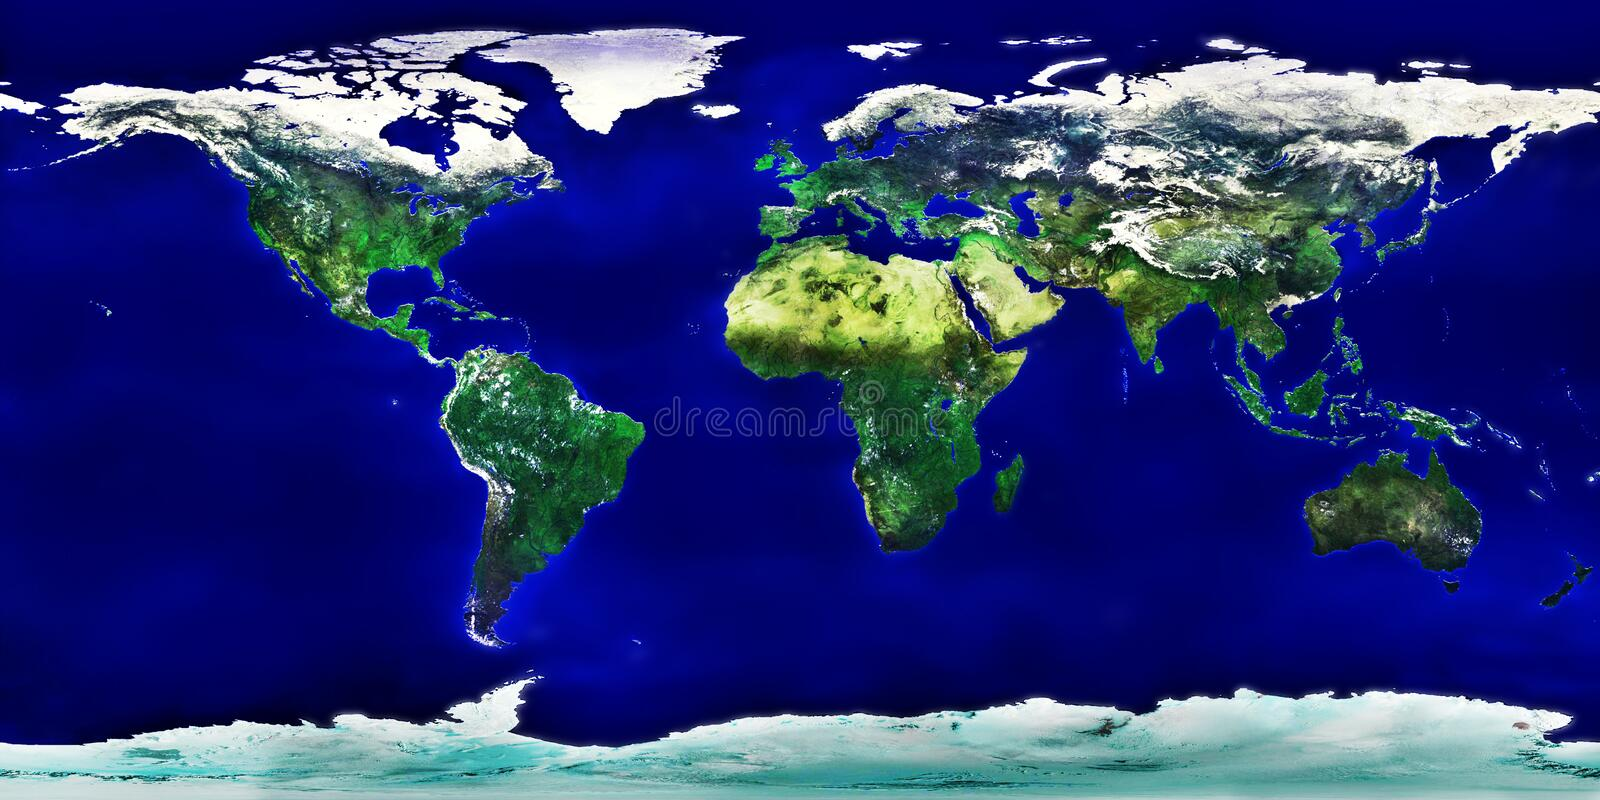 Download Detailed Colored World Map Royalty Free Stock Image - Image: 2305536